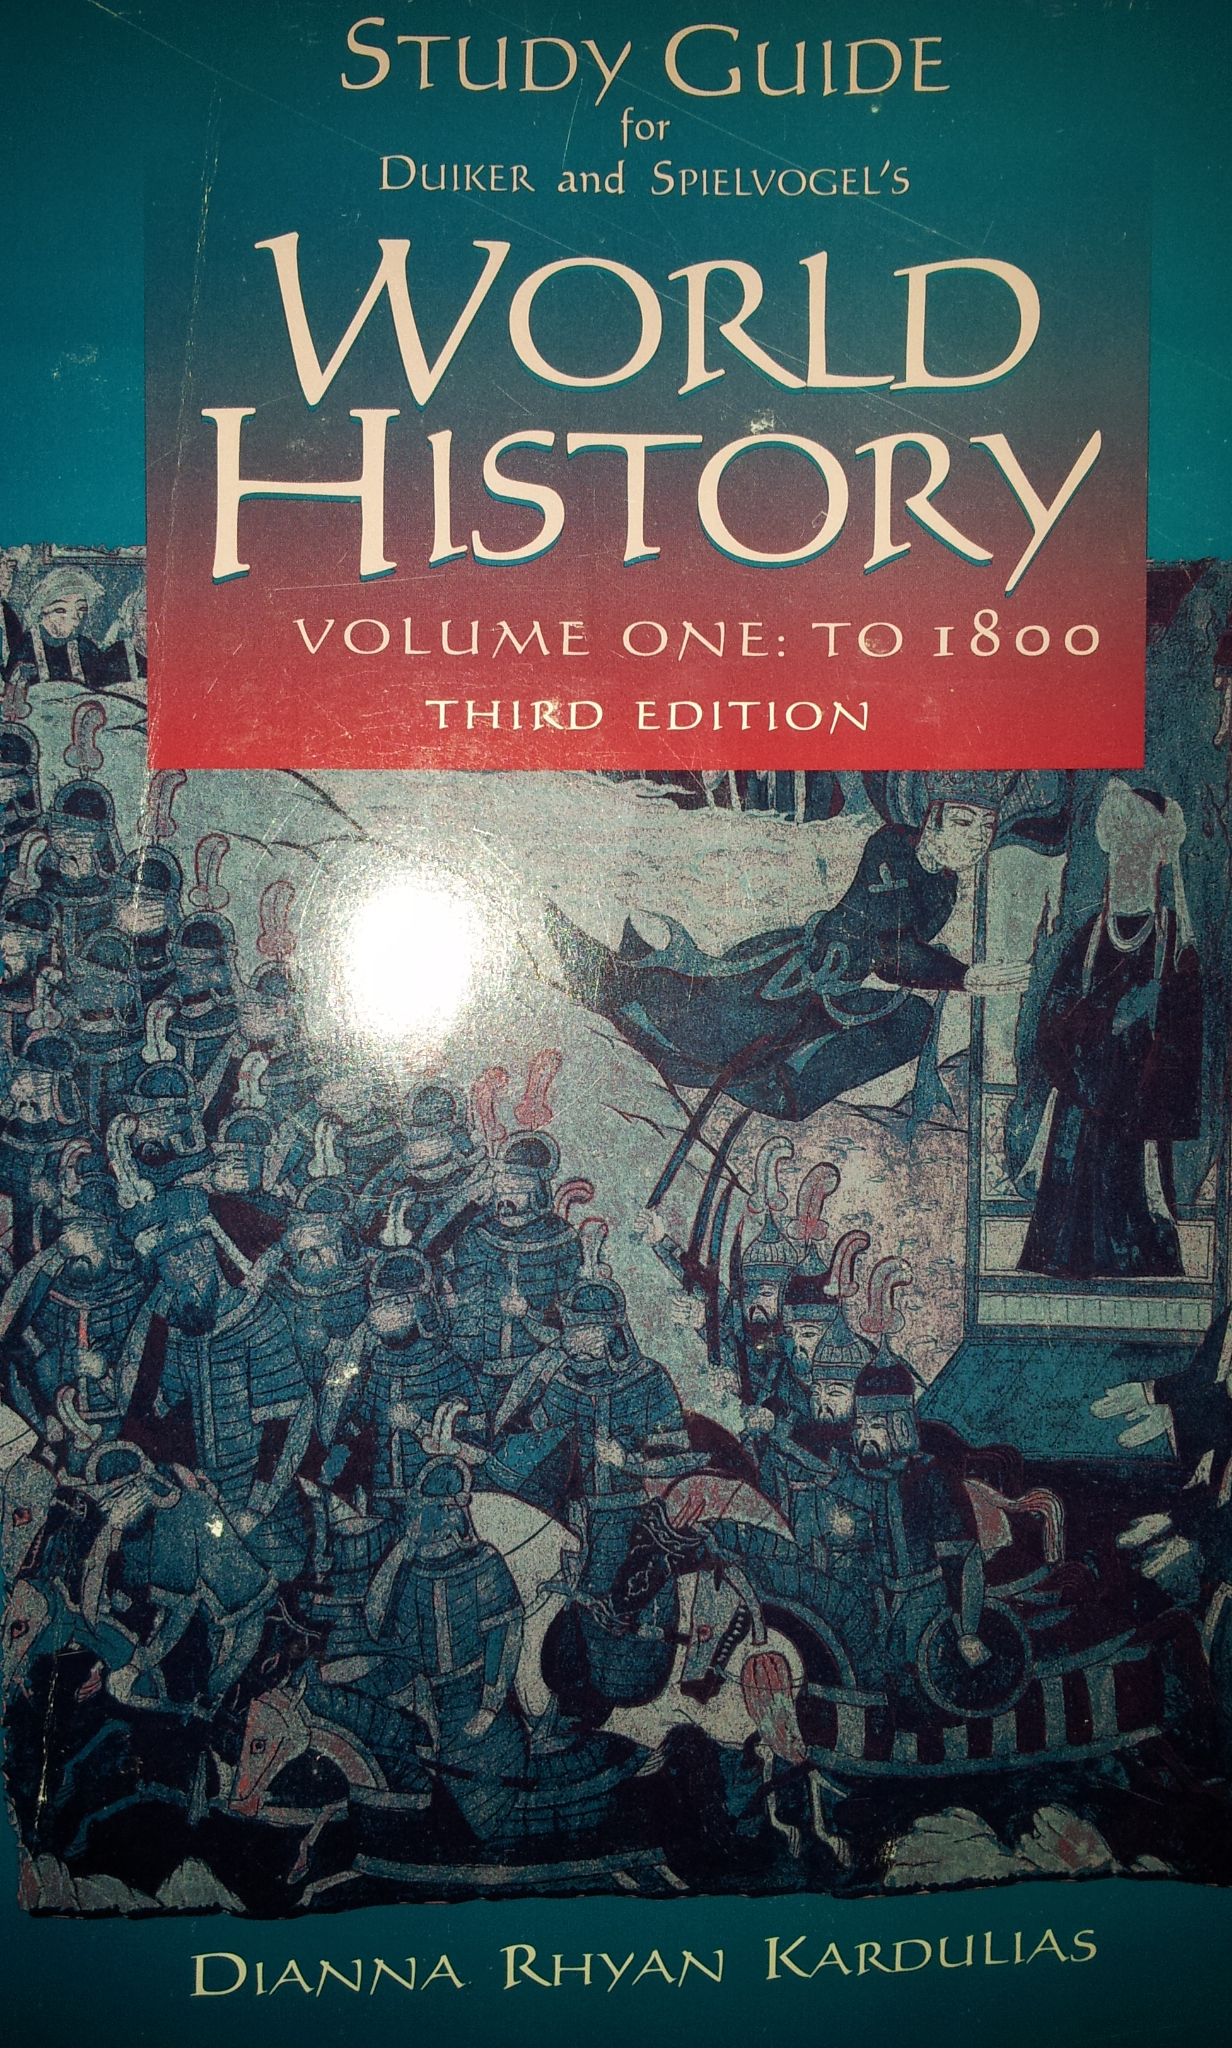 Study Guide for Duiker and Spielvogel's World History, Vol. 1